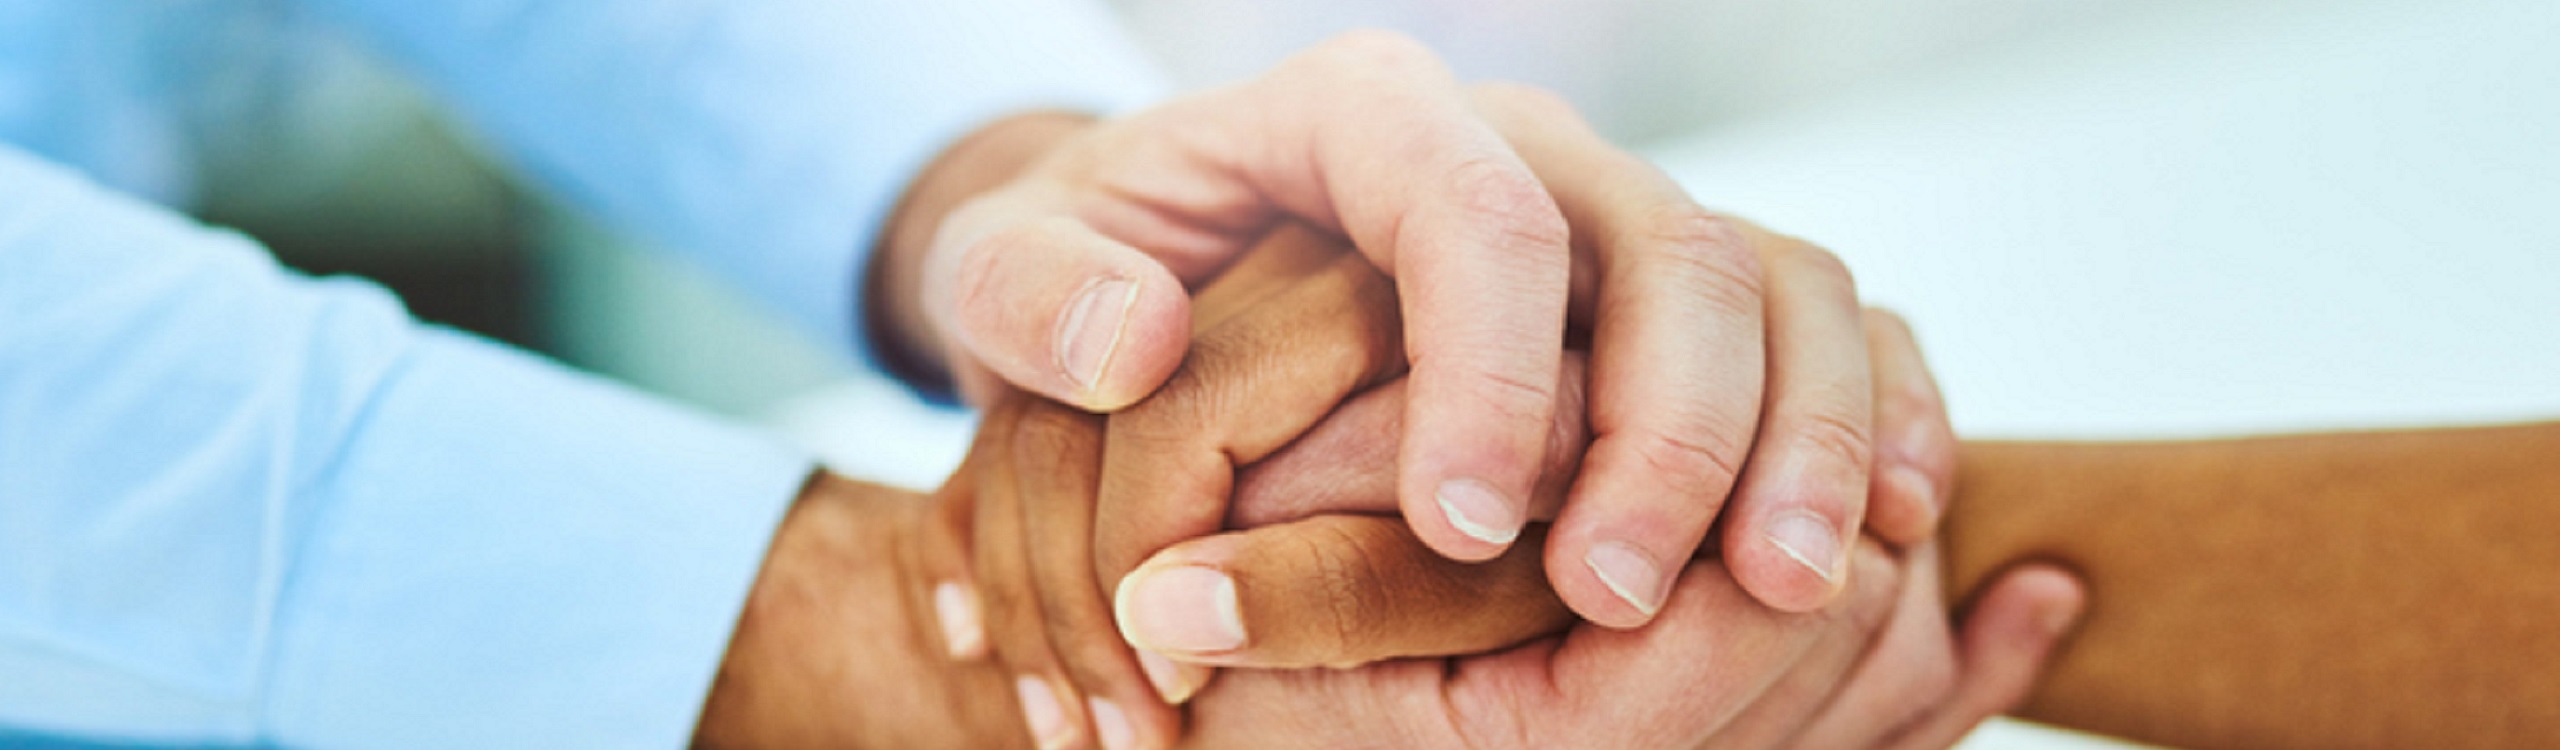 Holding hands in hospice